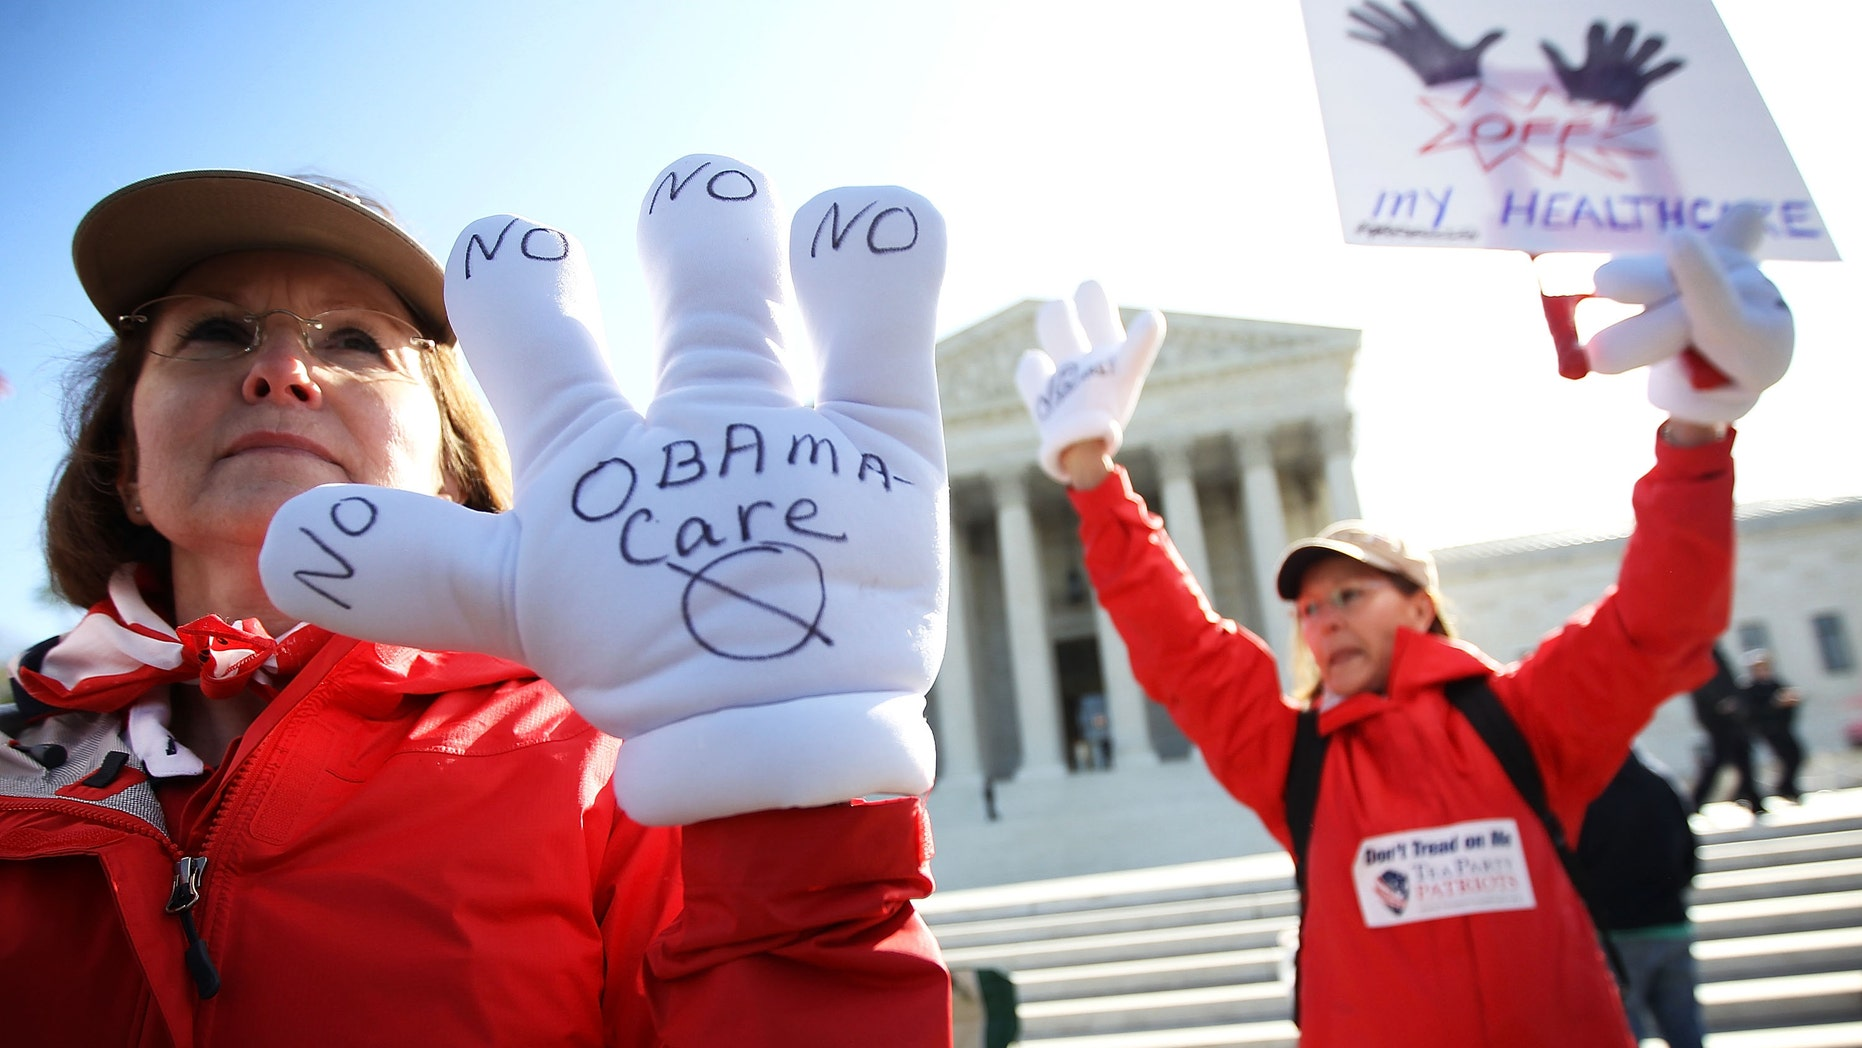 WASHINGTON, DC - MARCH 27: Sisters and Tea Party members of Atlanta, Georgia, Judy Burel (L) and Janis Haddon (R), protest the Obamacare in front of the U.S. Supreme Court March 27, 2012 in Washington, DC. The Supreme Court continued to hear oral arguments on the Patient Protection and Affordable Care Act.  (Photo by Alex Wong/Getty Images)